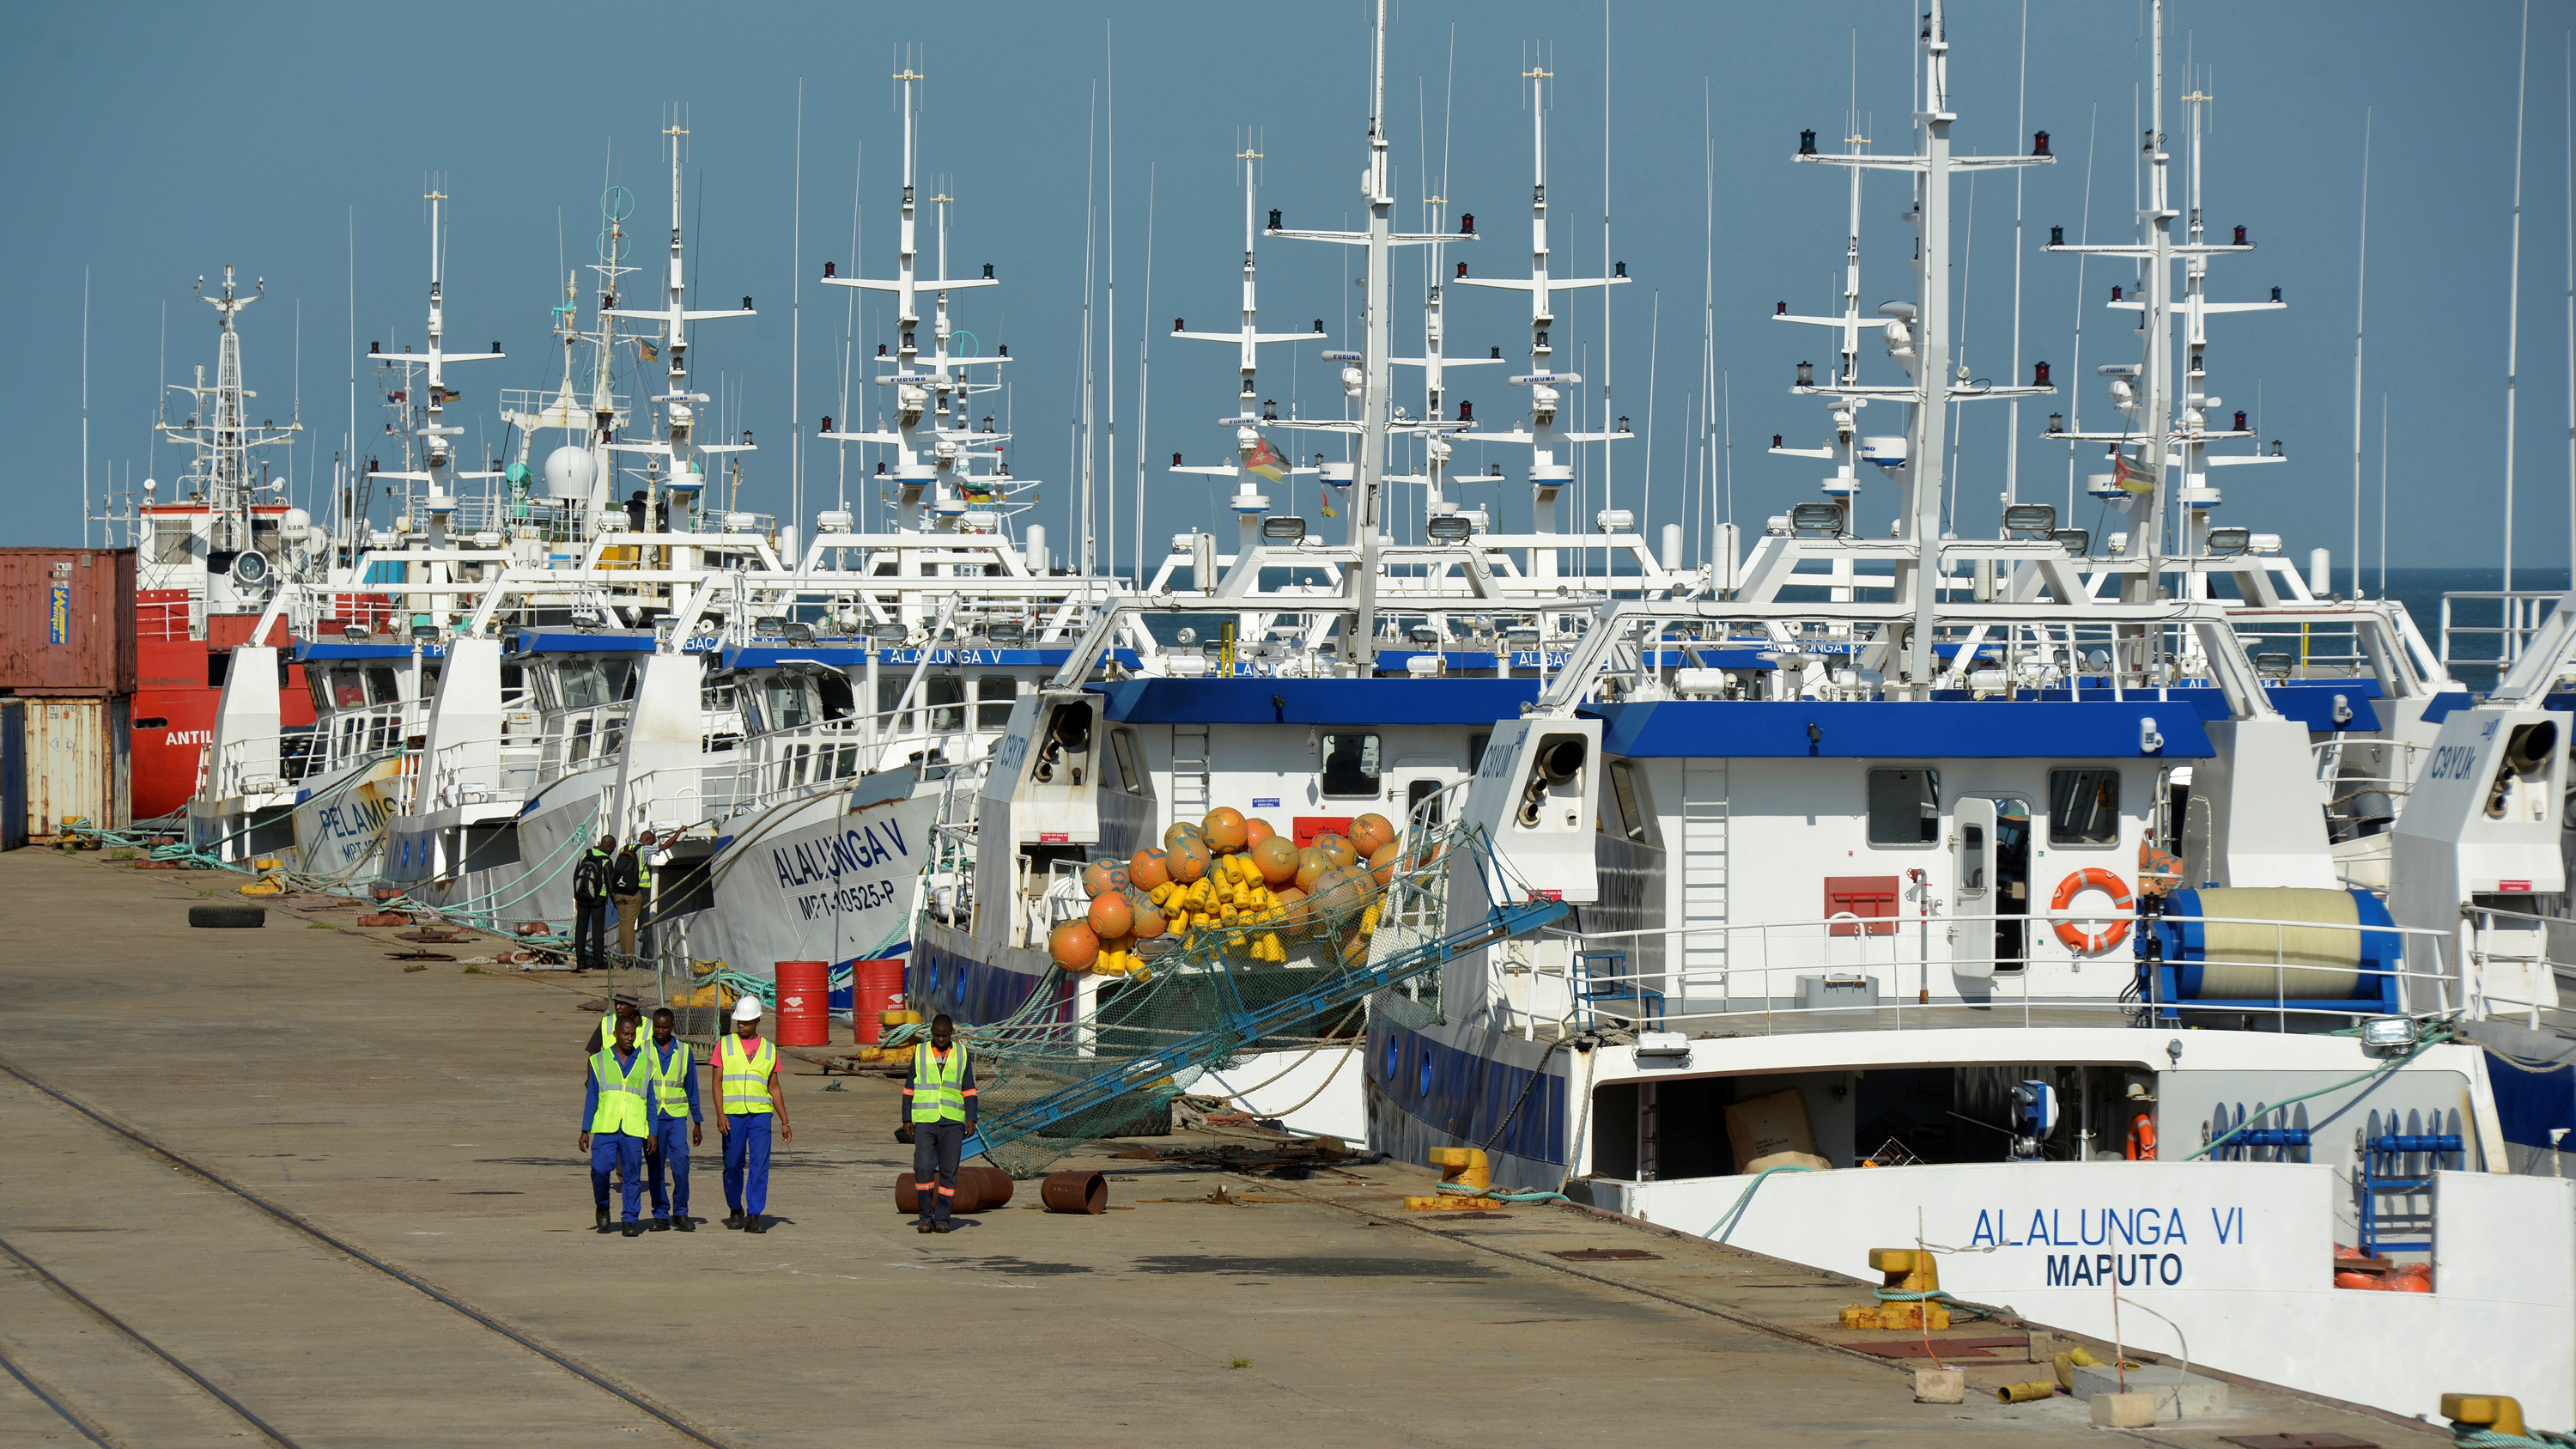 Security guards patrol past the EMATUM fishing fleet docked in Maputo